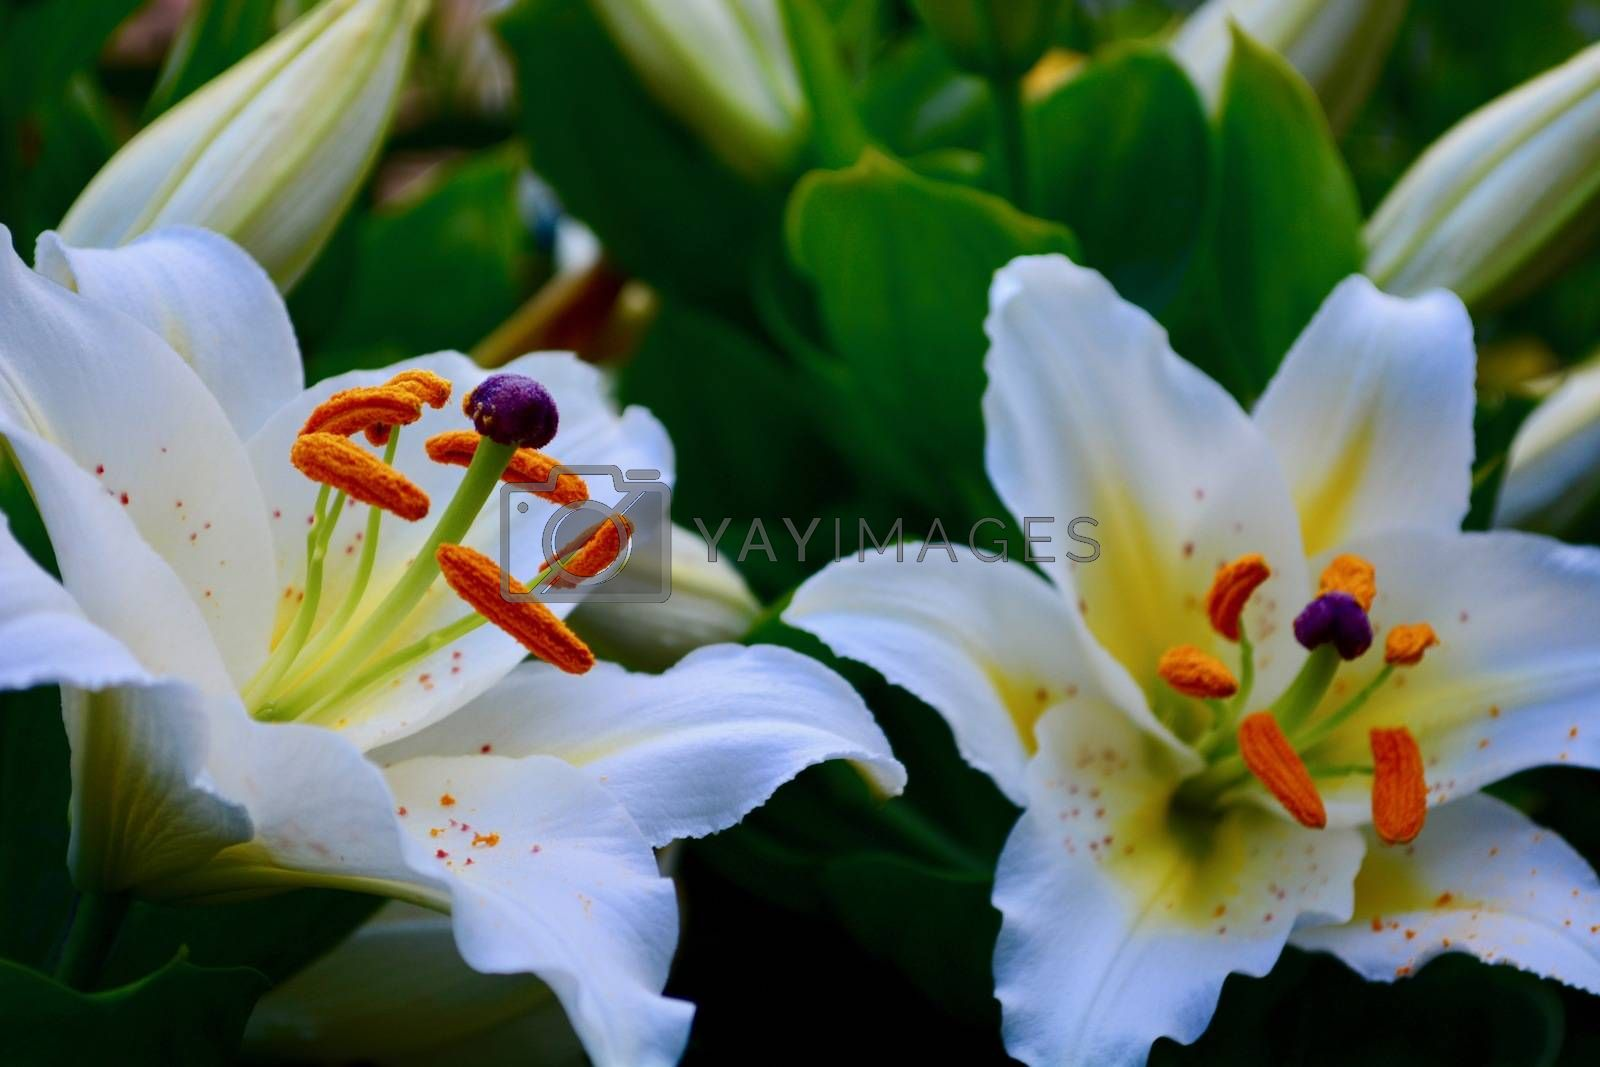 Close-up of a flower, beautiful flowers, being close to nature, bringing nature close to you, white Lily flower, elegance